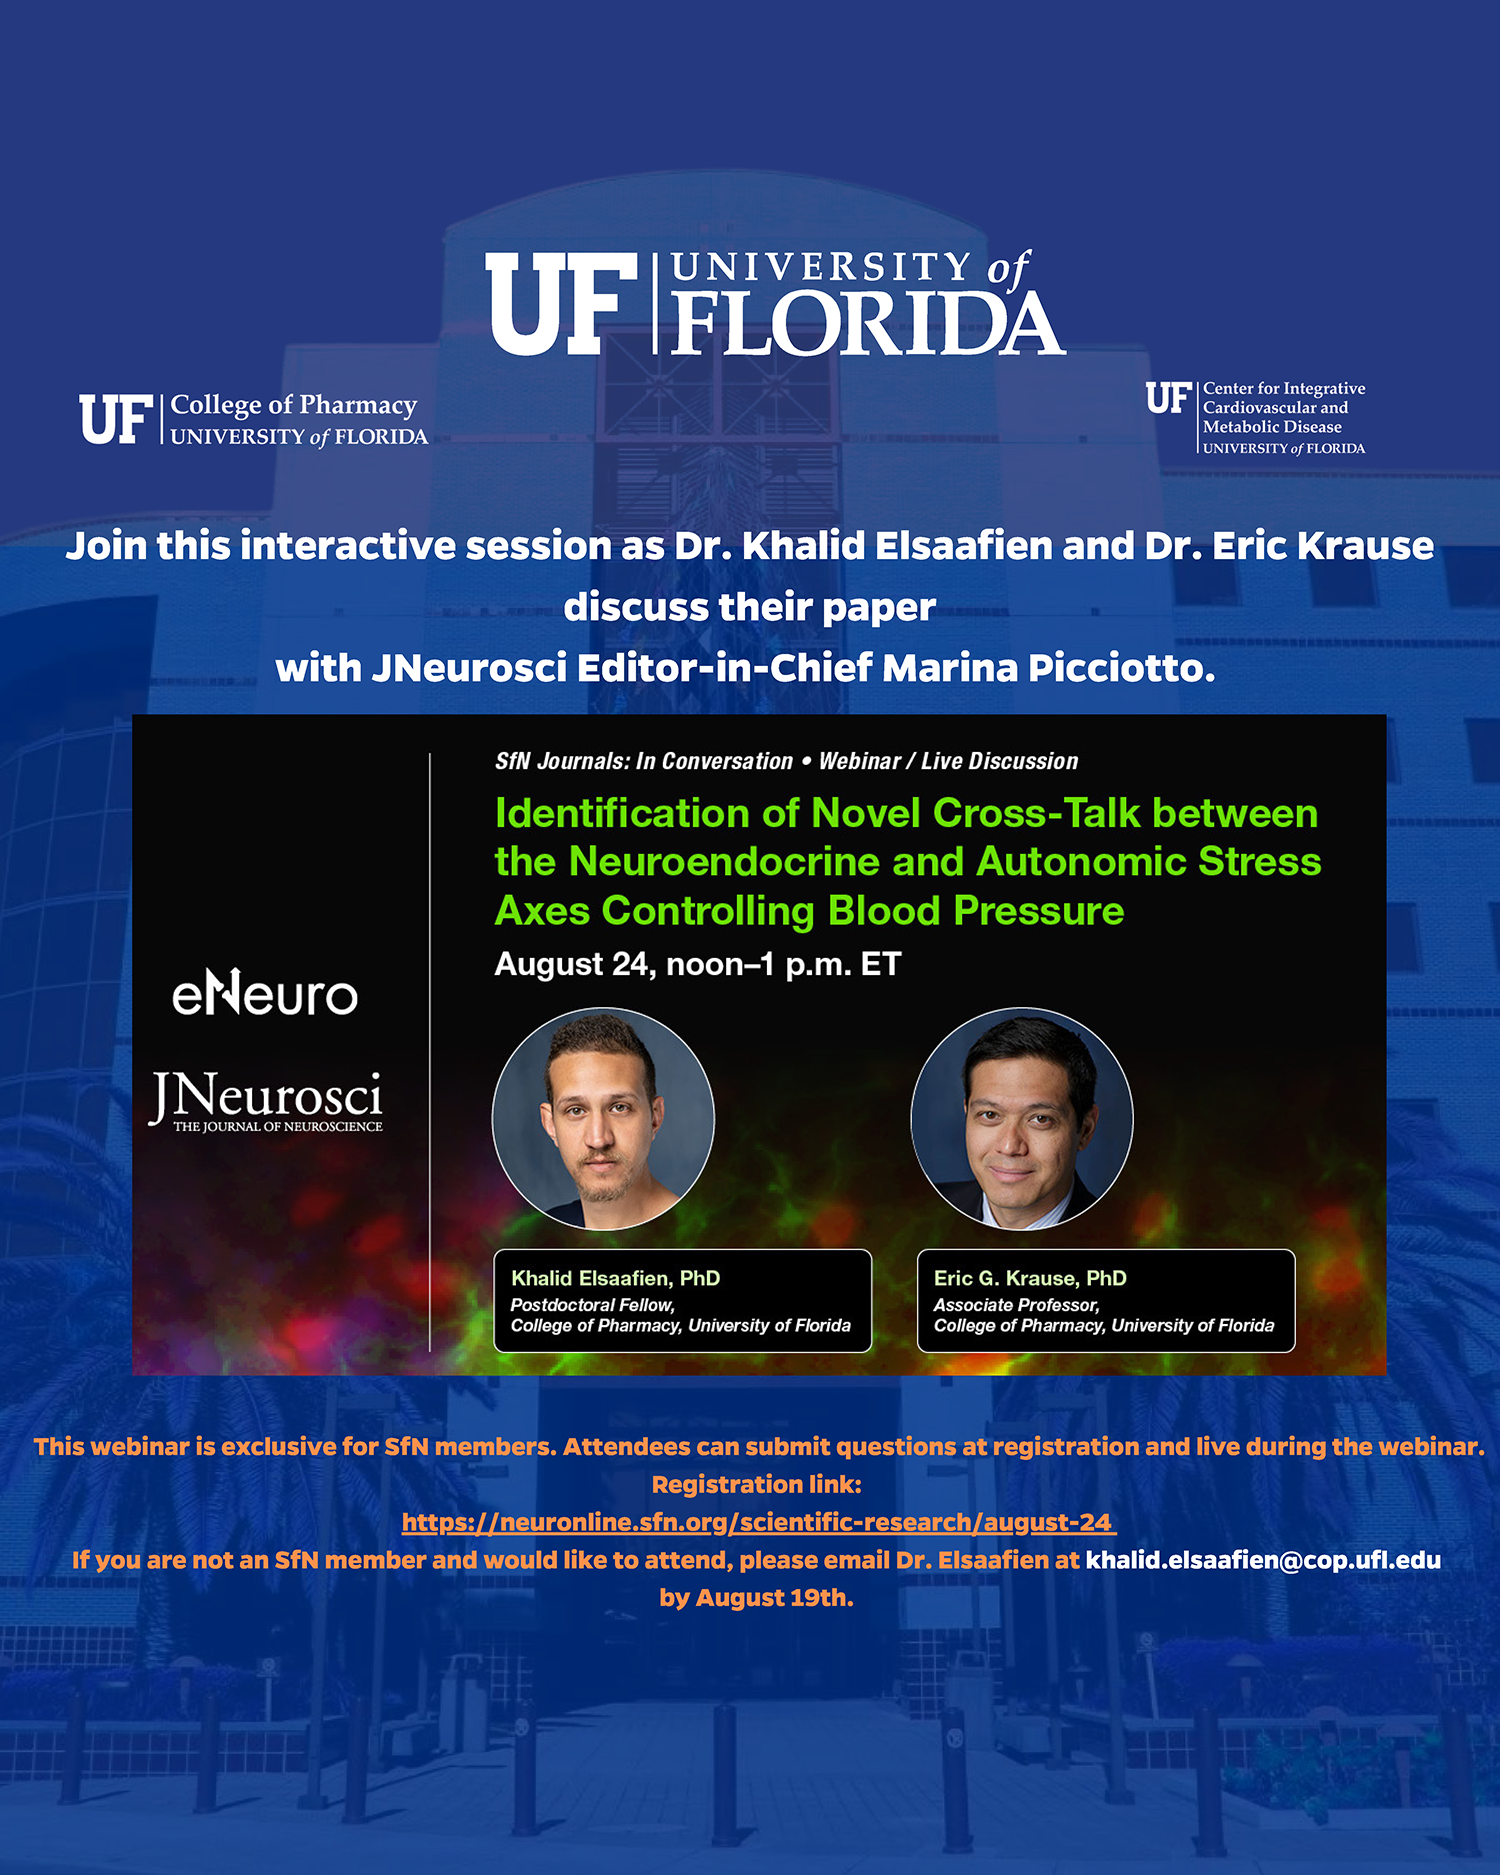 """Join this interactive webinar, """"Identification of Neovel Cross-Talk between neuroendocrine and autonomic stress axes controlling blood pressure"""". August 24 from noon to 1 p-m eastern time"""